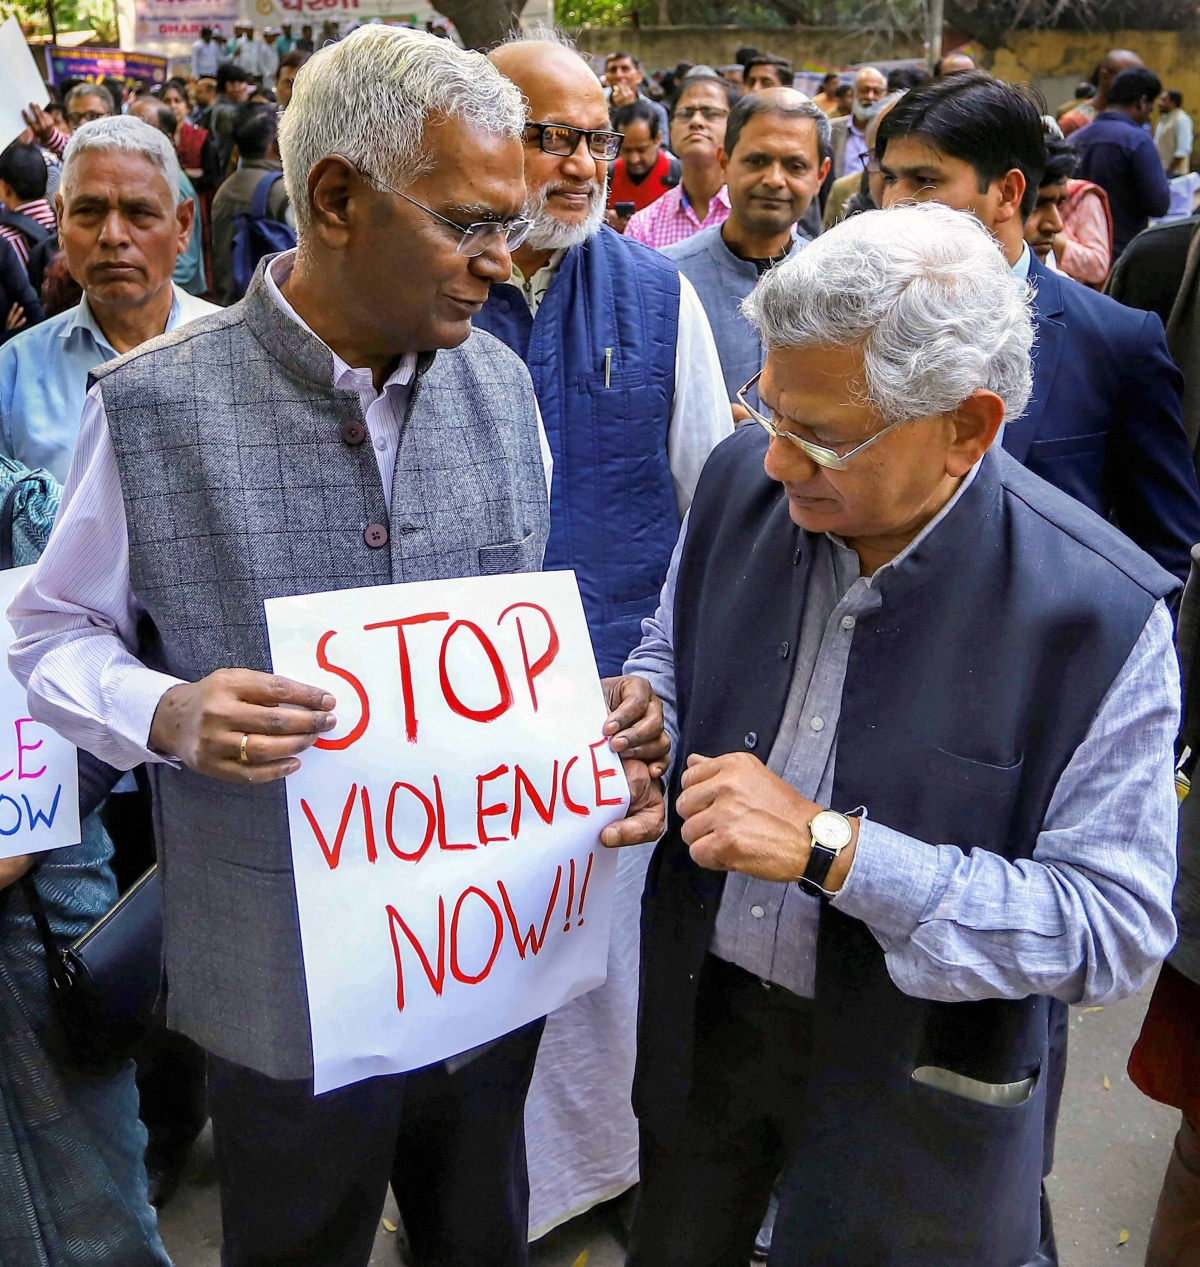 General Secretary of Communist Party of India (CPI) D Raja and CPI(M) general secretary Sitaram Yechury stage a peaceful protest in view of the recent violence in riot-affected areas of east delhi, in New Delhi, Wednesday, Feb. 26, 2020.